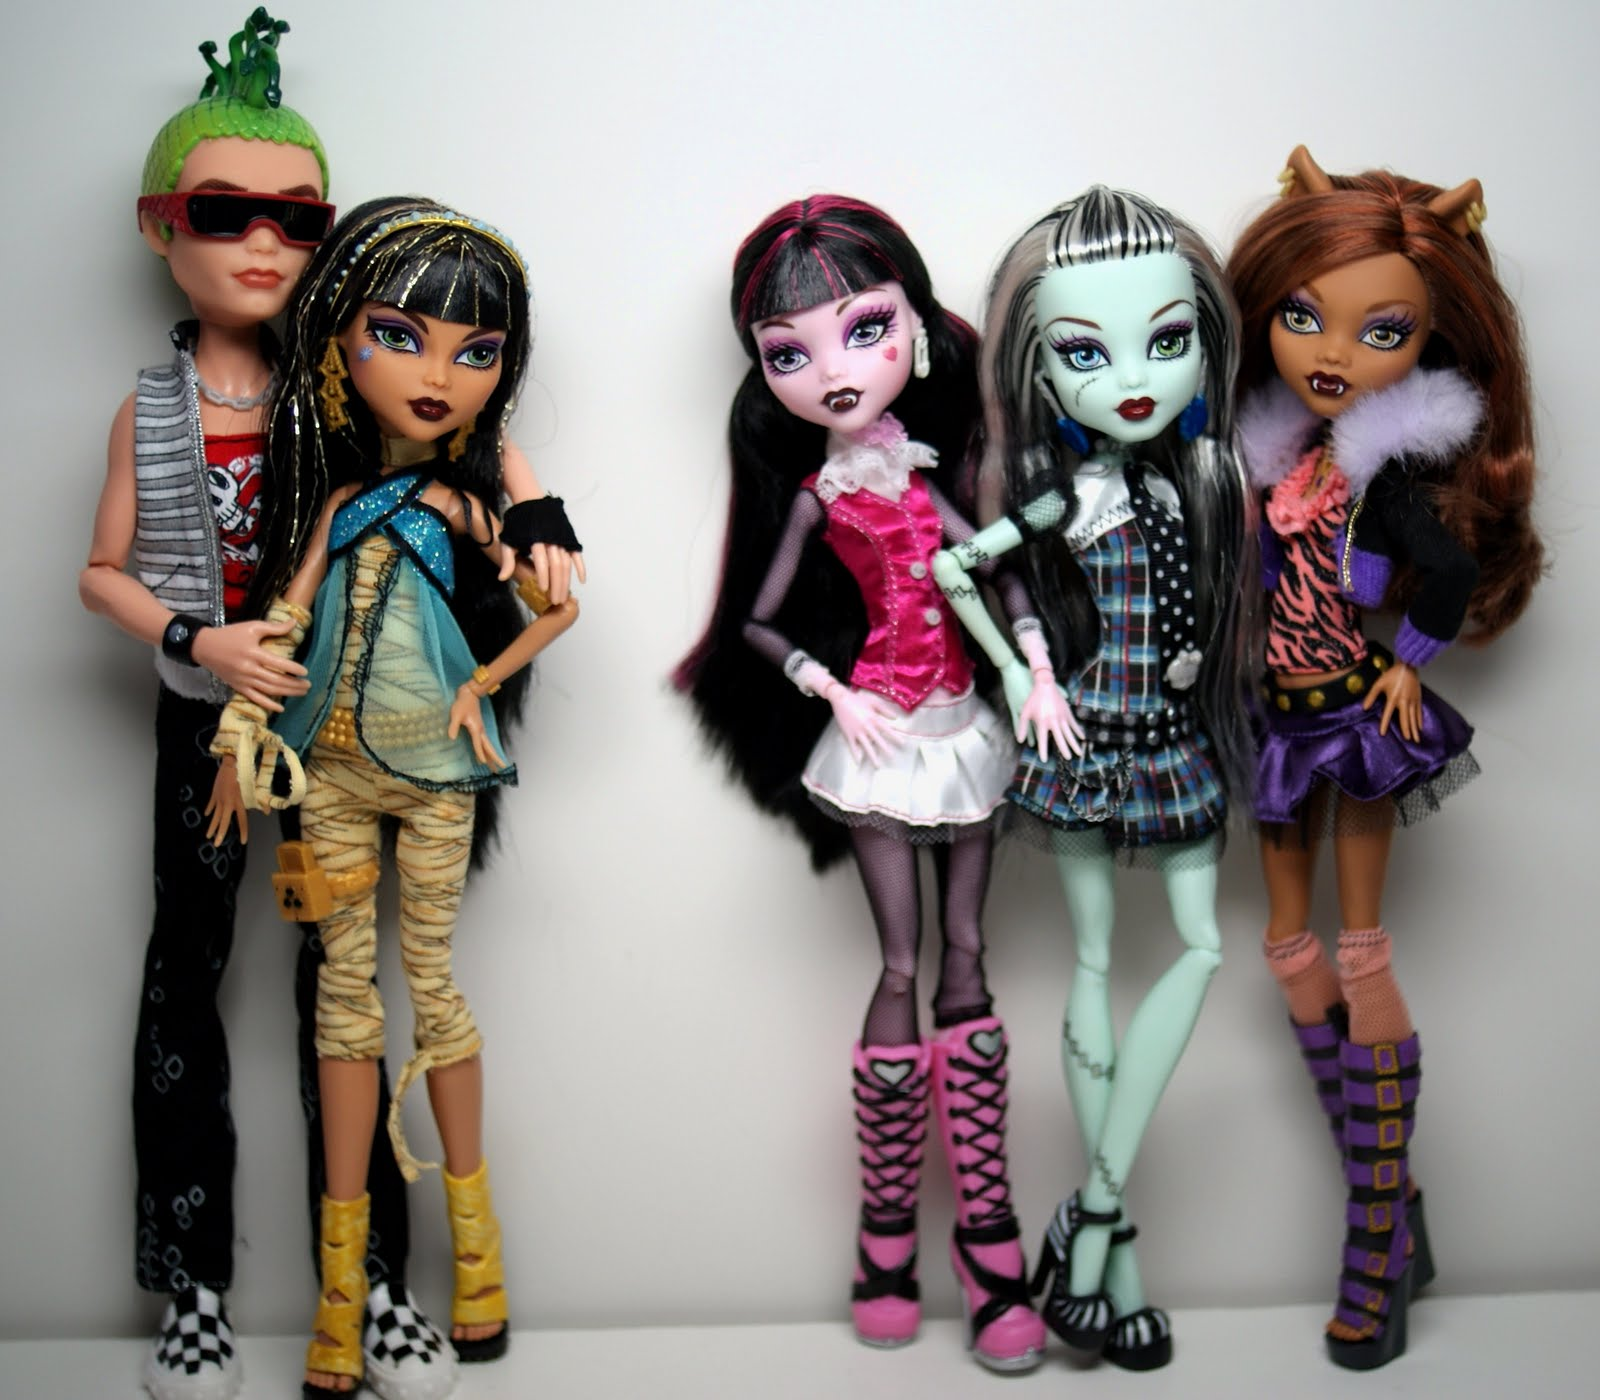 THE FASHION DOLL REVIEW